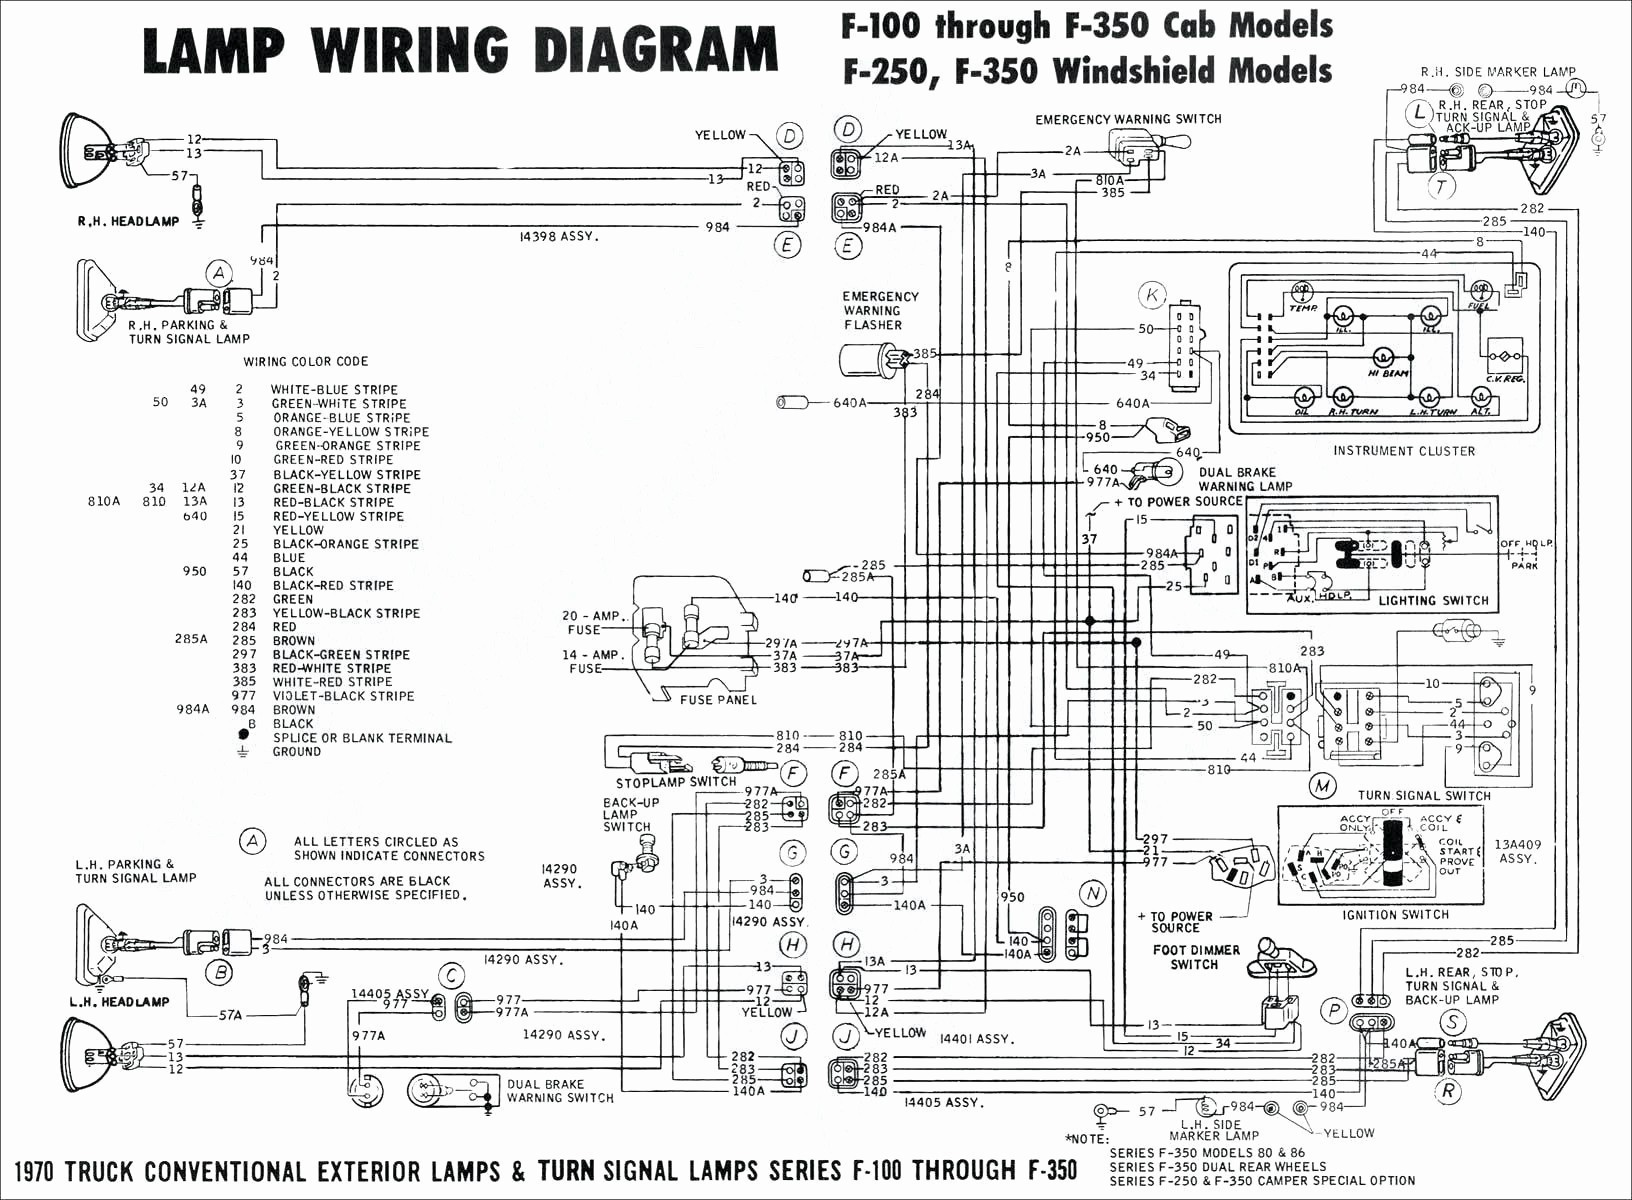 How to Wire Hazard Flasher Diagram] Basic Turn Signal Ke Wiring Diagram Full Version Hd Of How to Wire Hazard Flasher